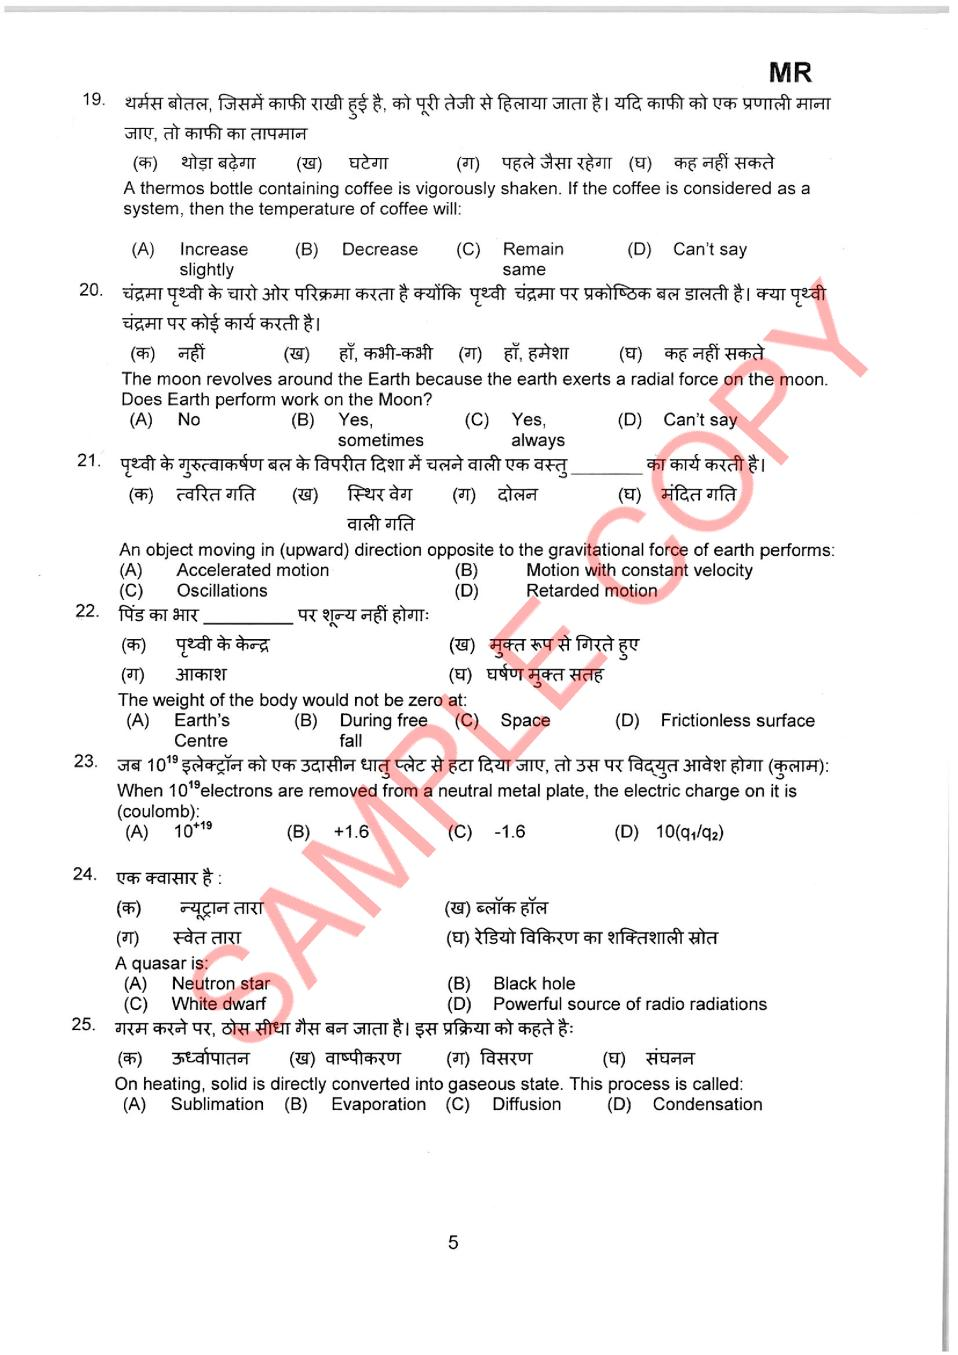 Indian Navy MR Sample Paper: How to use it